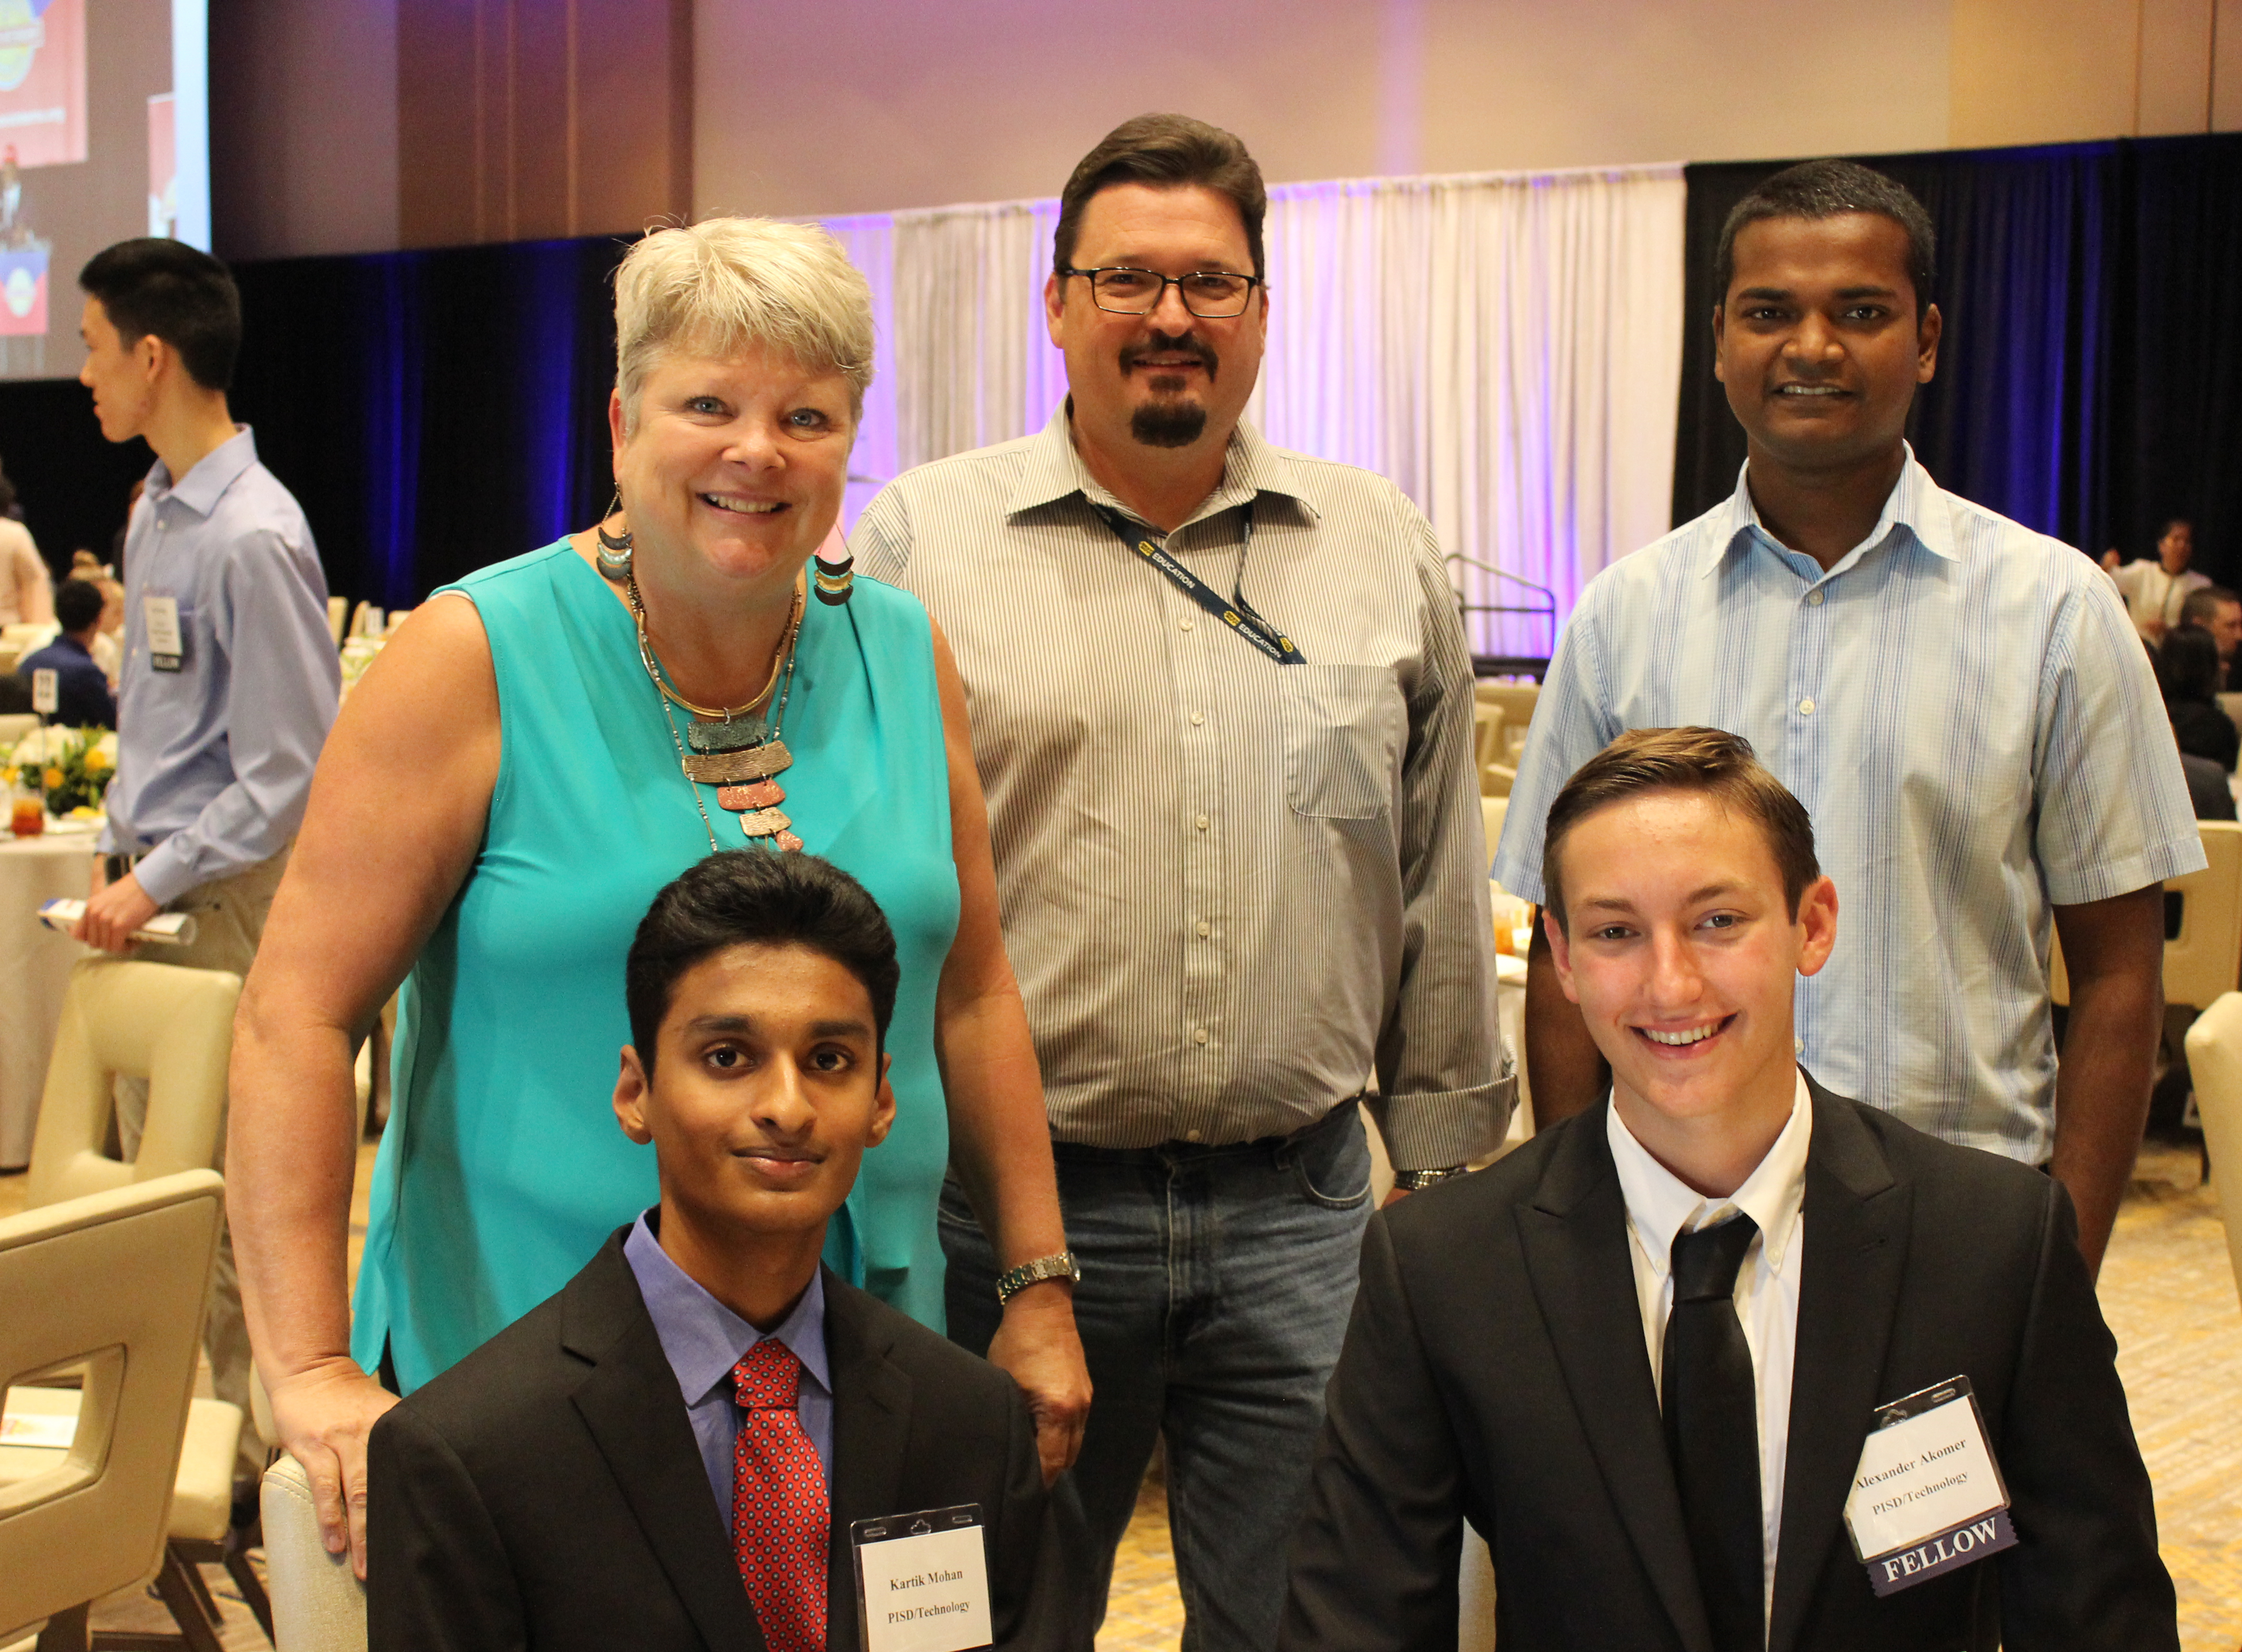 Technology Services summer interns Kartik Mohan and Alex Akomer with Technology staff at celebration luncheon